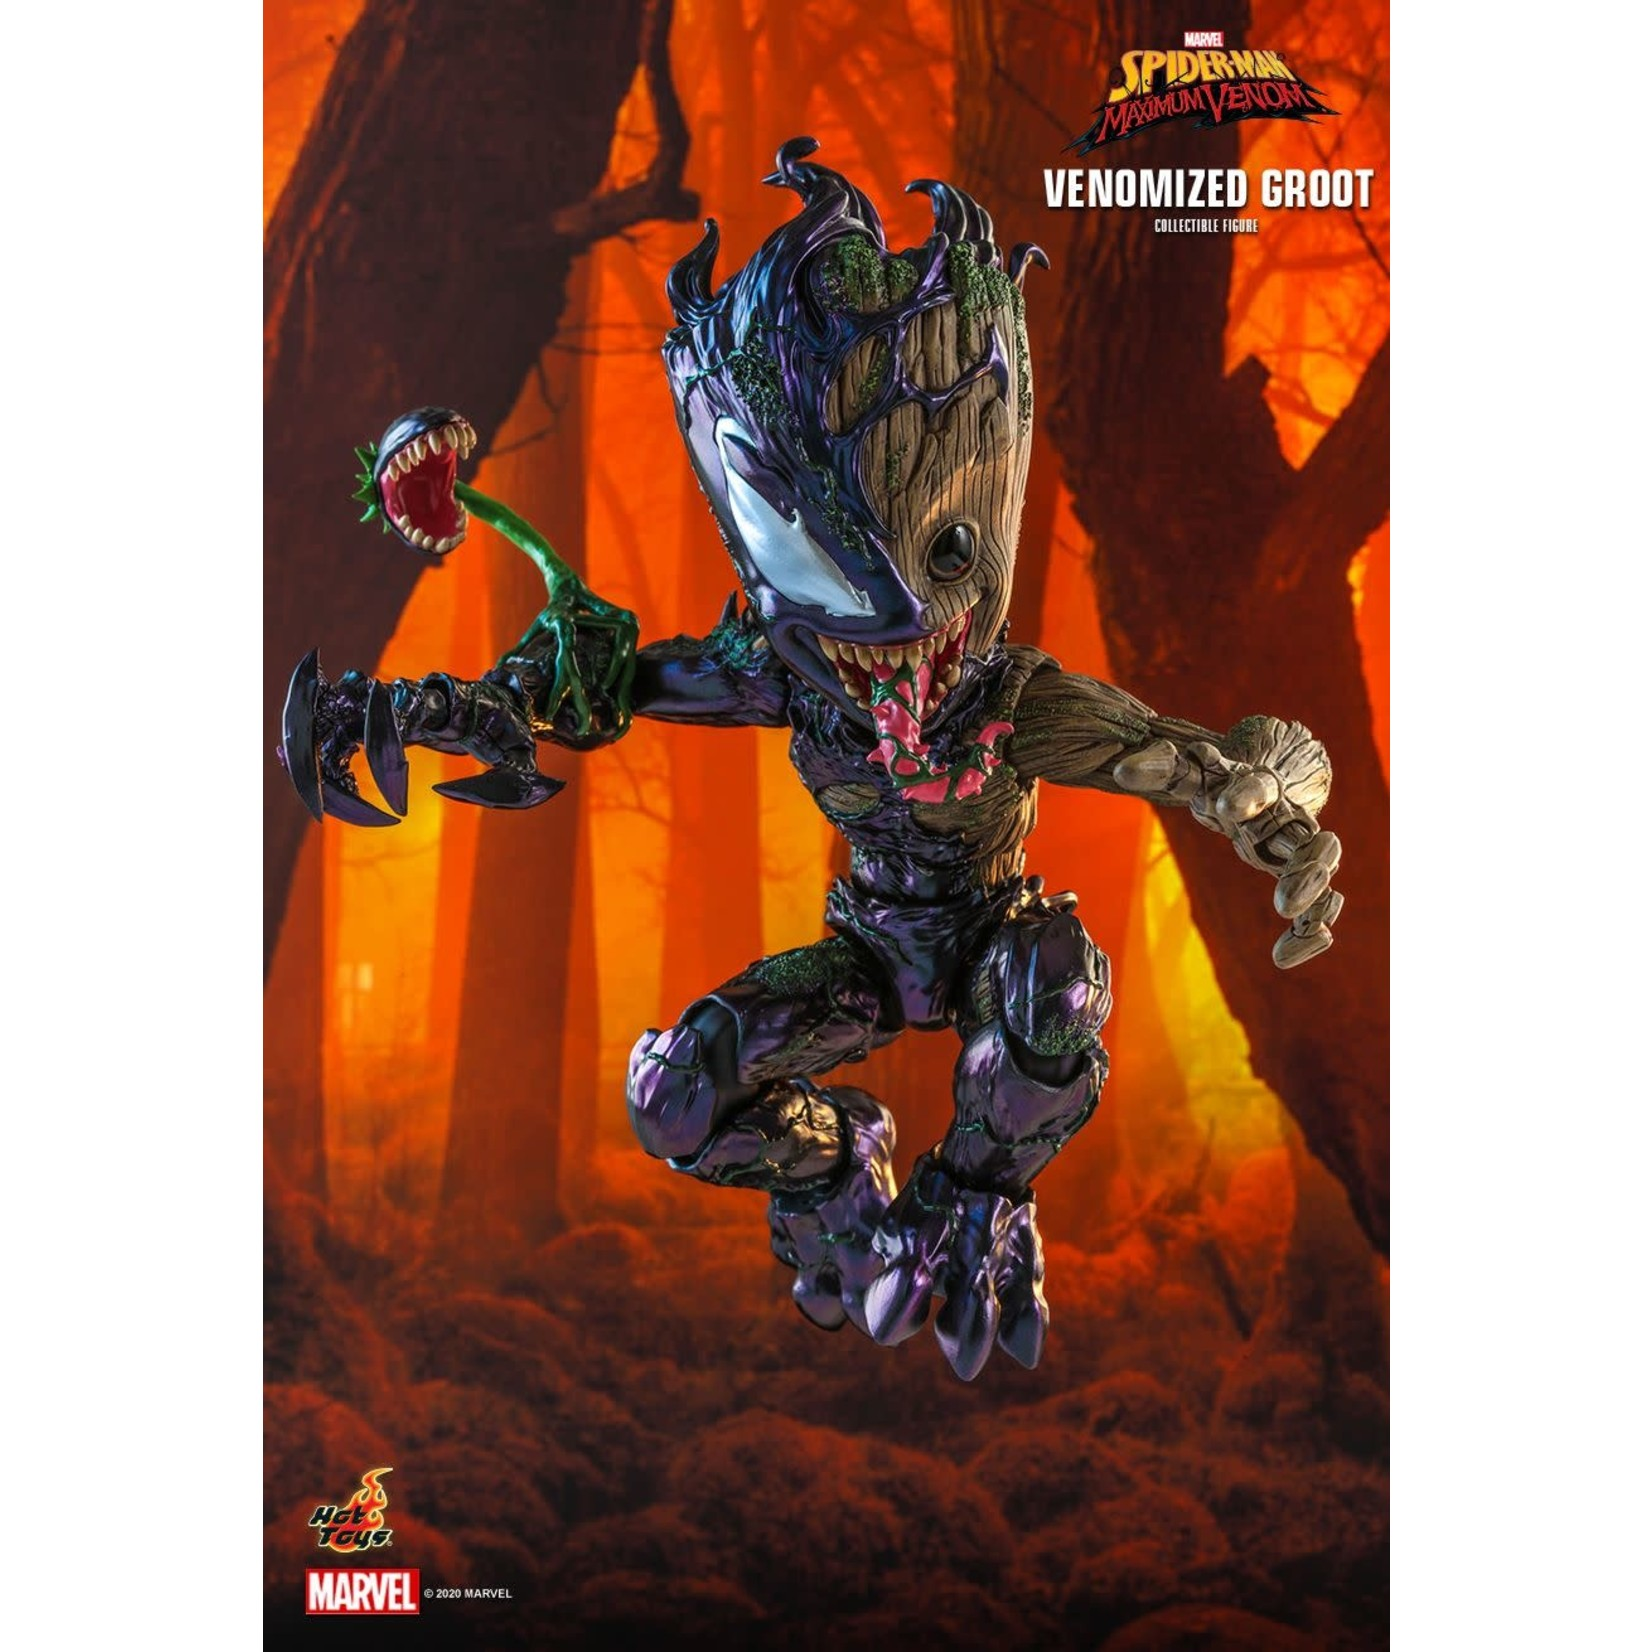 Hot Toys Hot Toys TMS027 Venomized Groot